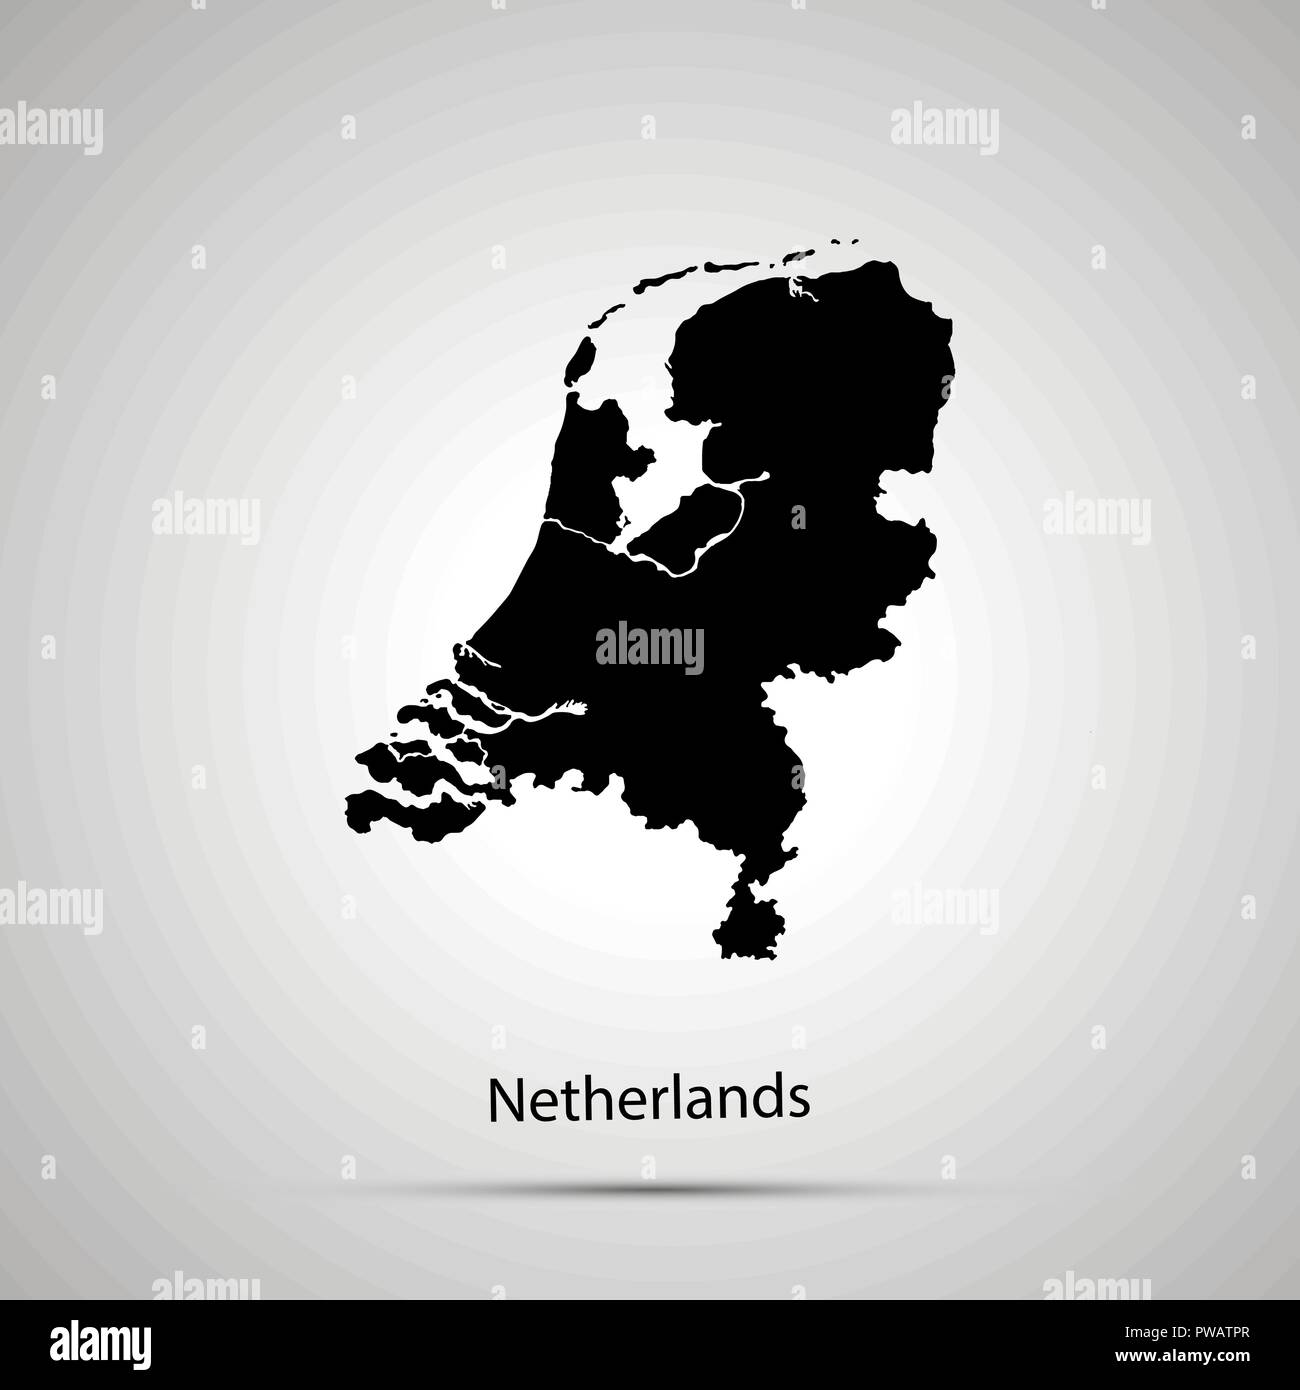 Netherlands Country Map Stock Photos & Netherlands Country Map Stock ...